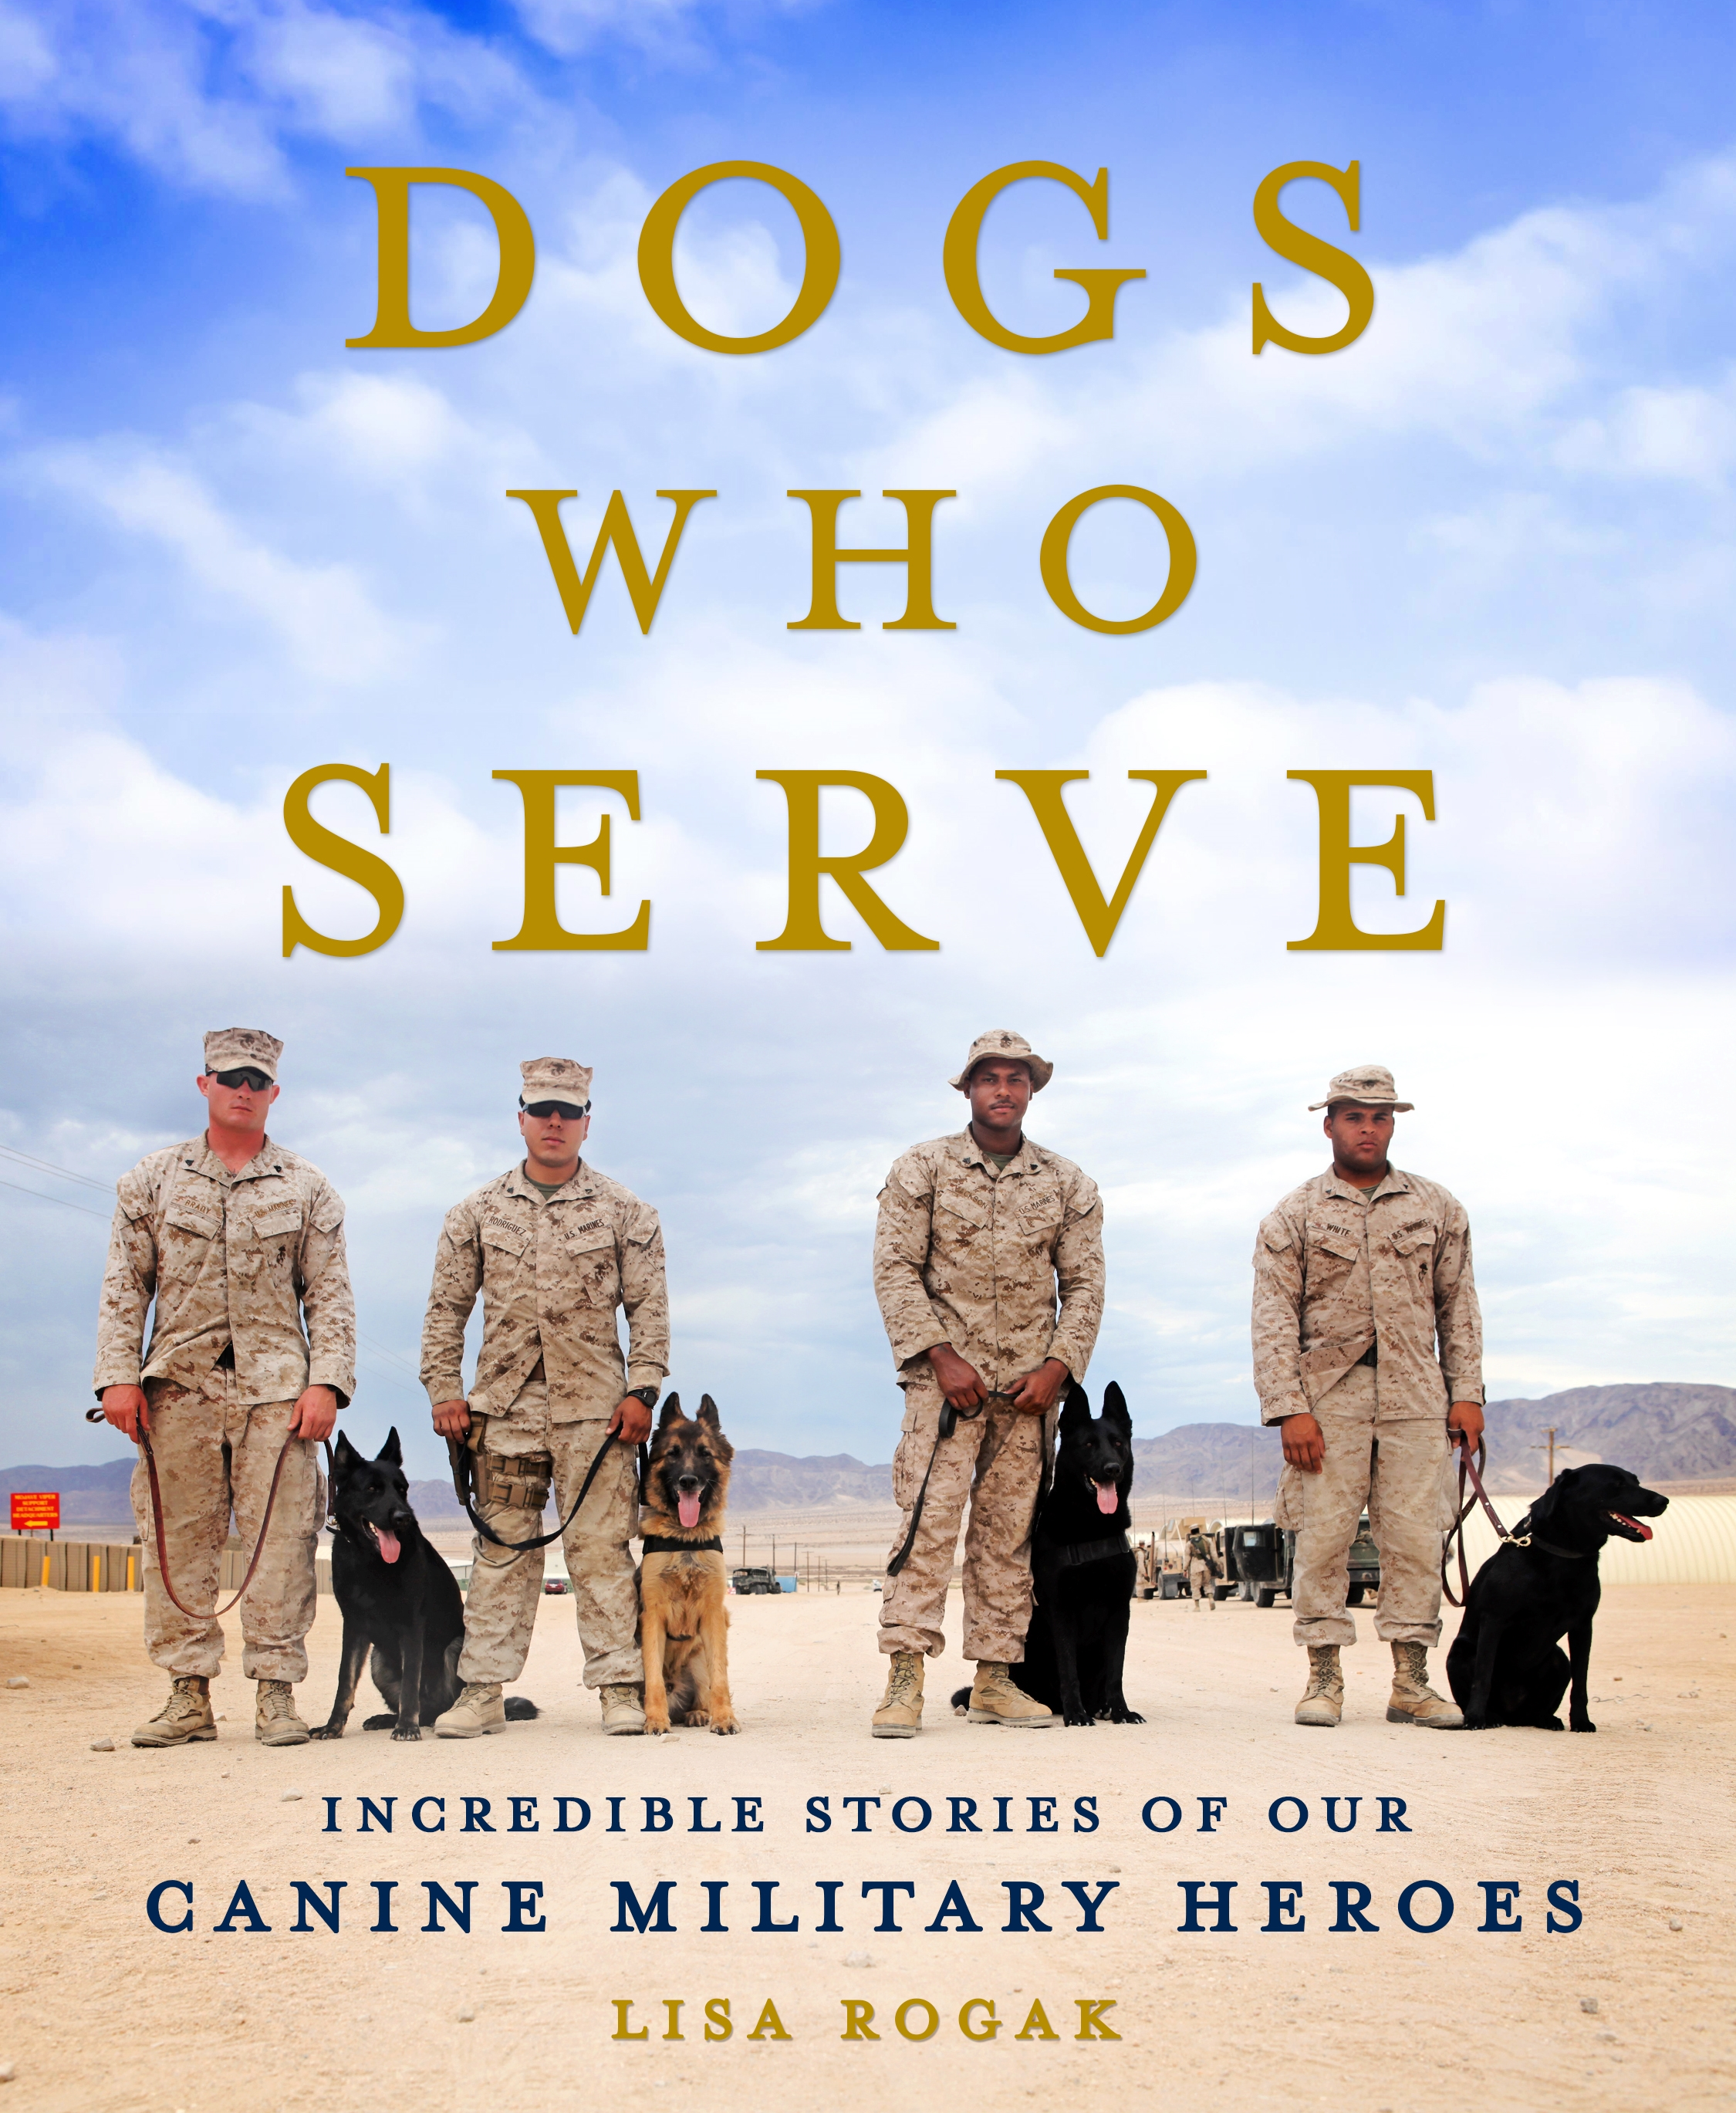 Dogs Who Serve Incredible Stories of Our Canine Military Heroes